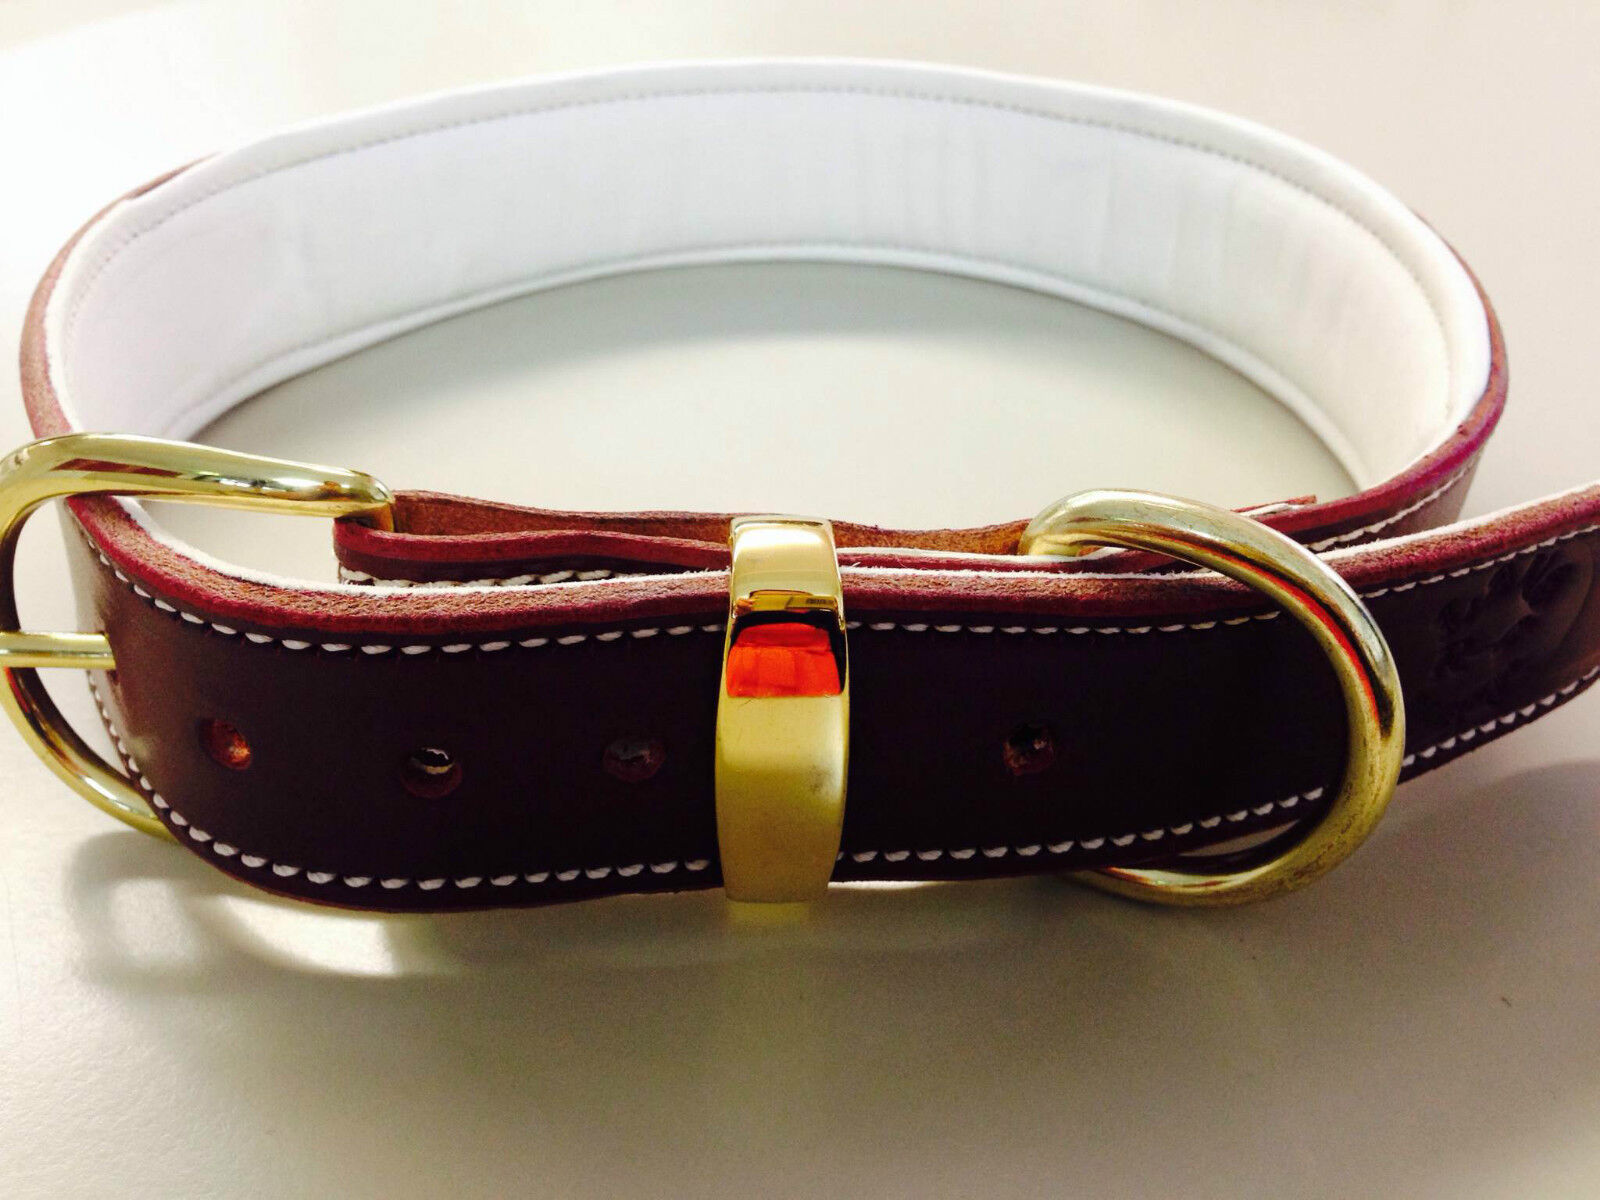 X-Large Marronee Leather Dog Collar & Lined Soft Pure bianca bianca bianca Leather & Brass Buckle 0b0bd2